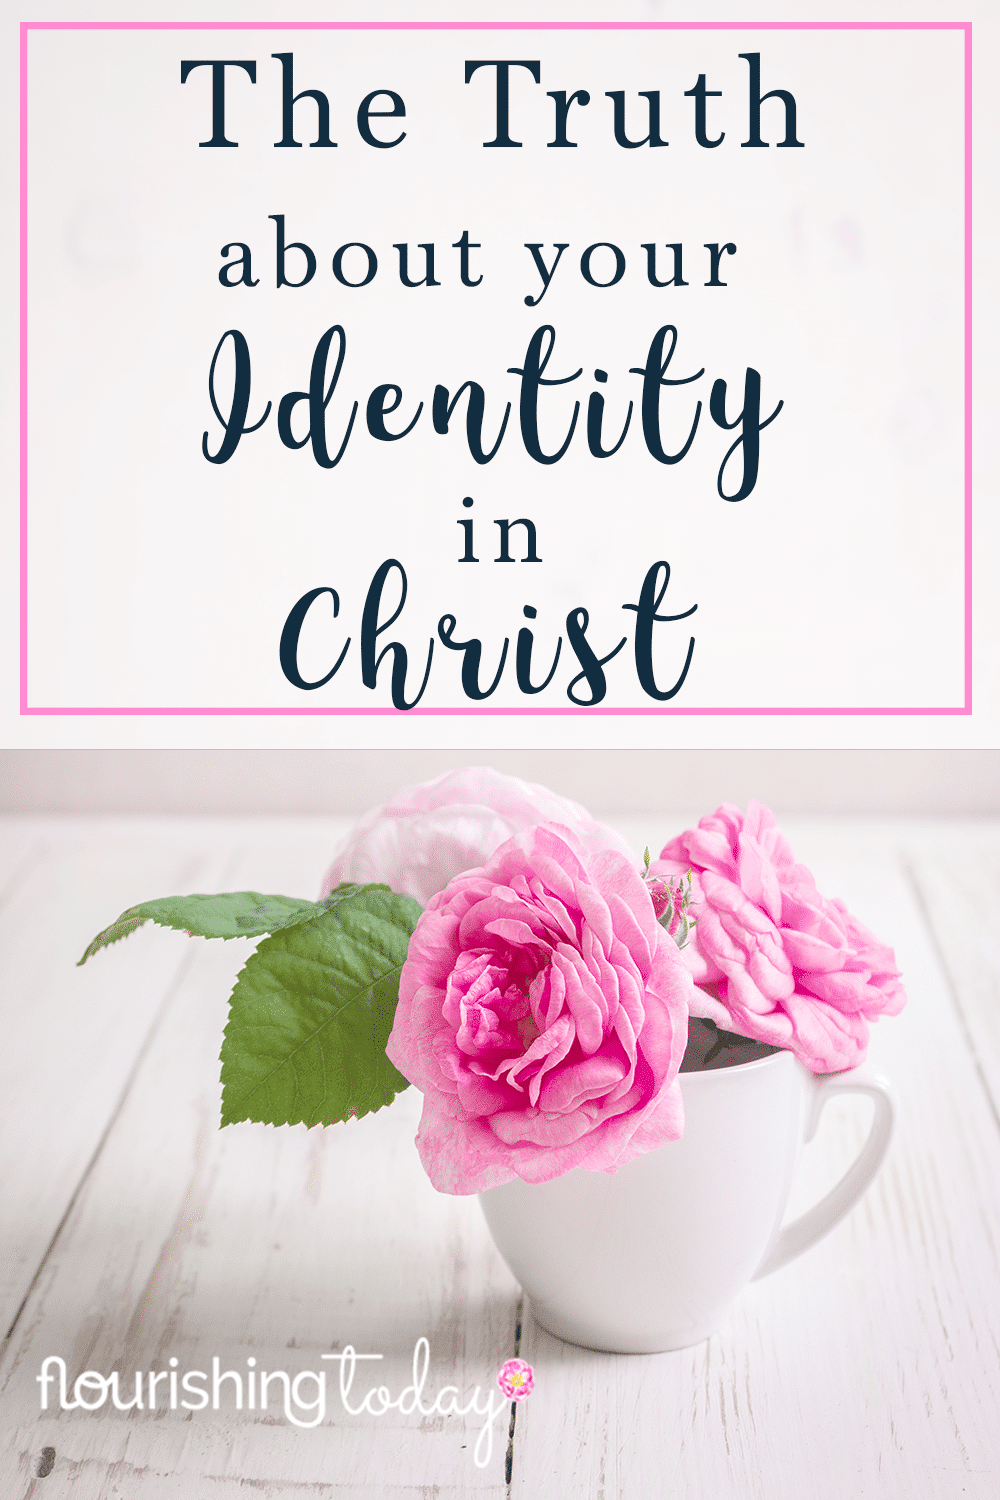 What lies have you believed about who you are? God's Word provides truth about our identity. Here you'll find out about your true identity in Christ.